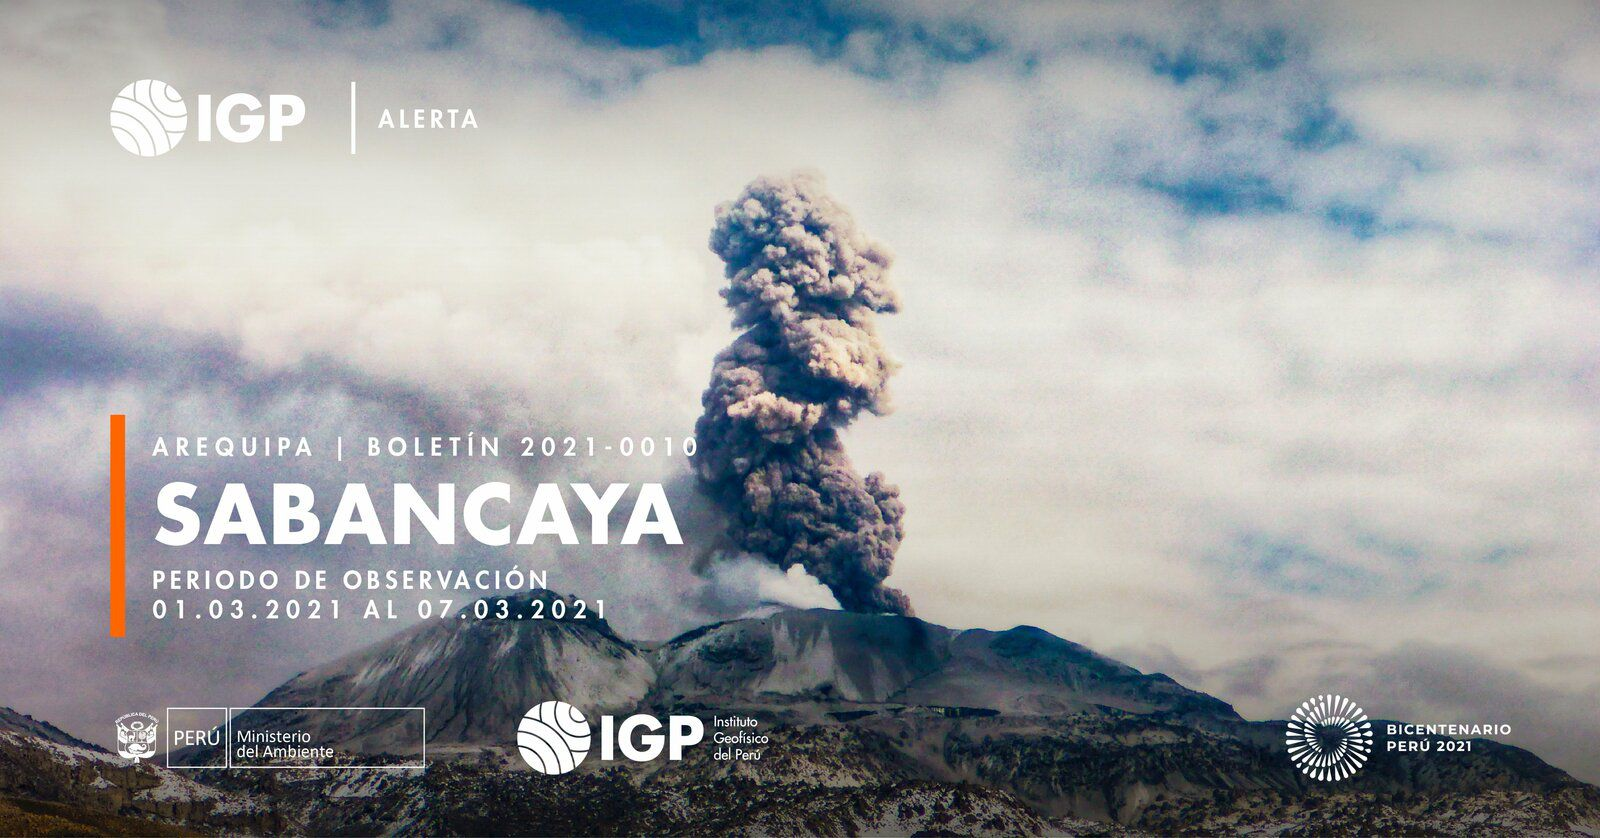 Sabancaya - activity between March 1 and 7, 2021 - Doc. I.G. Peru